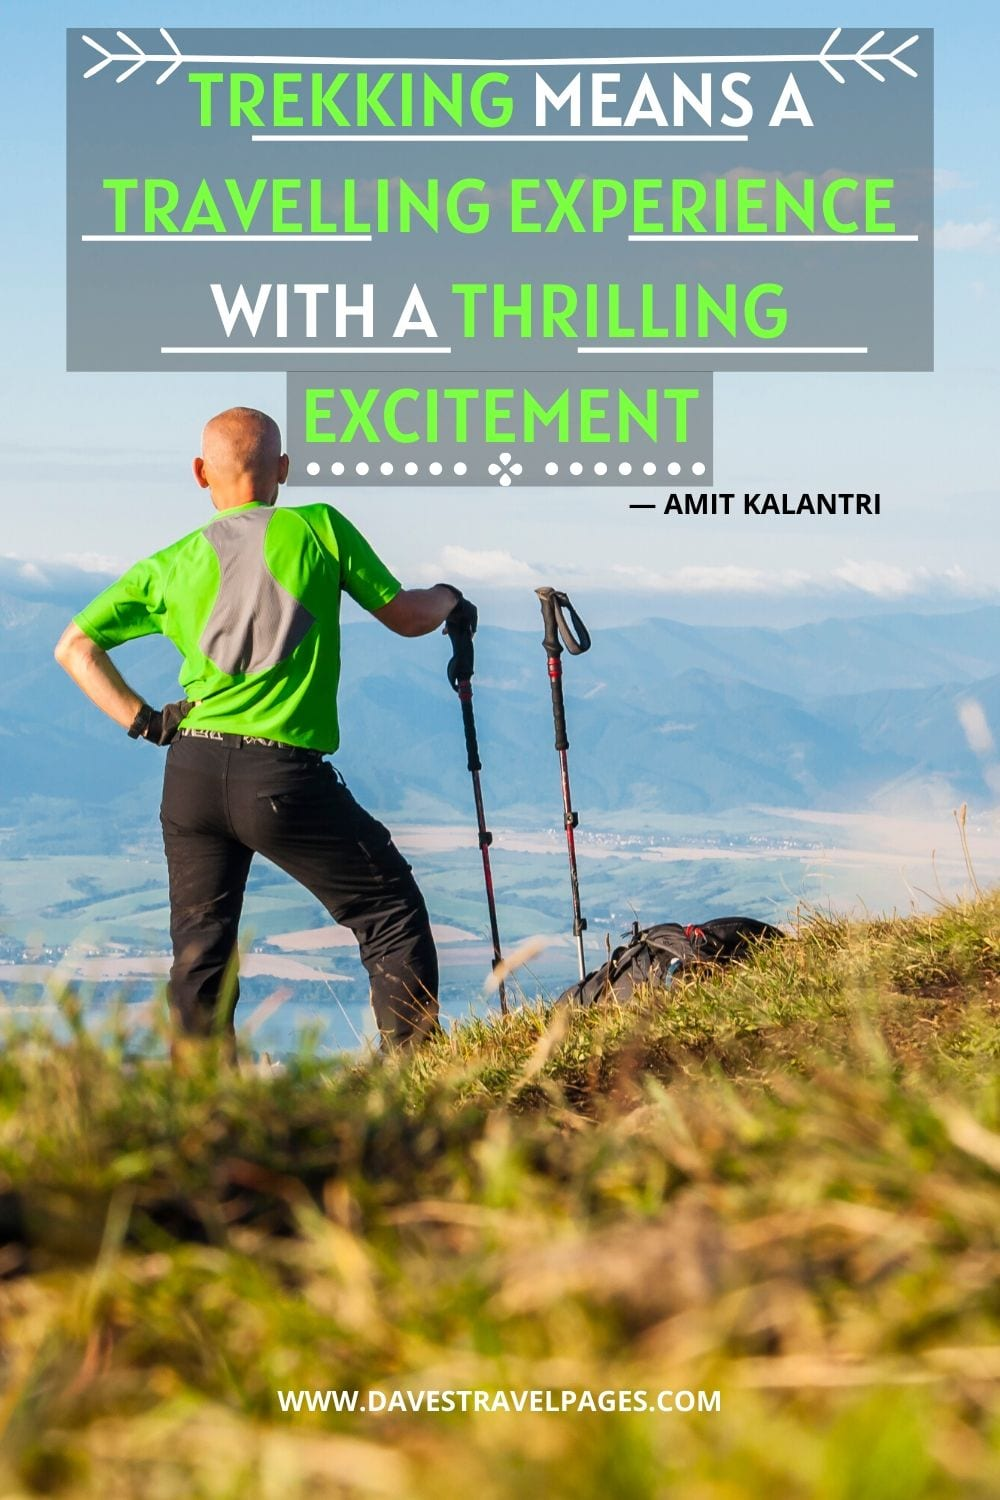 Trekking Quotes: Trekking means a travelling experience with a thrilling excitement